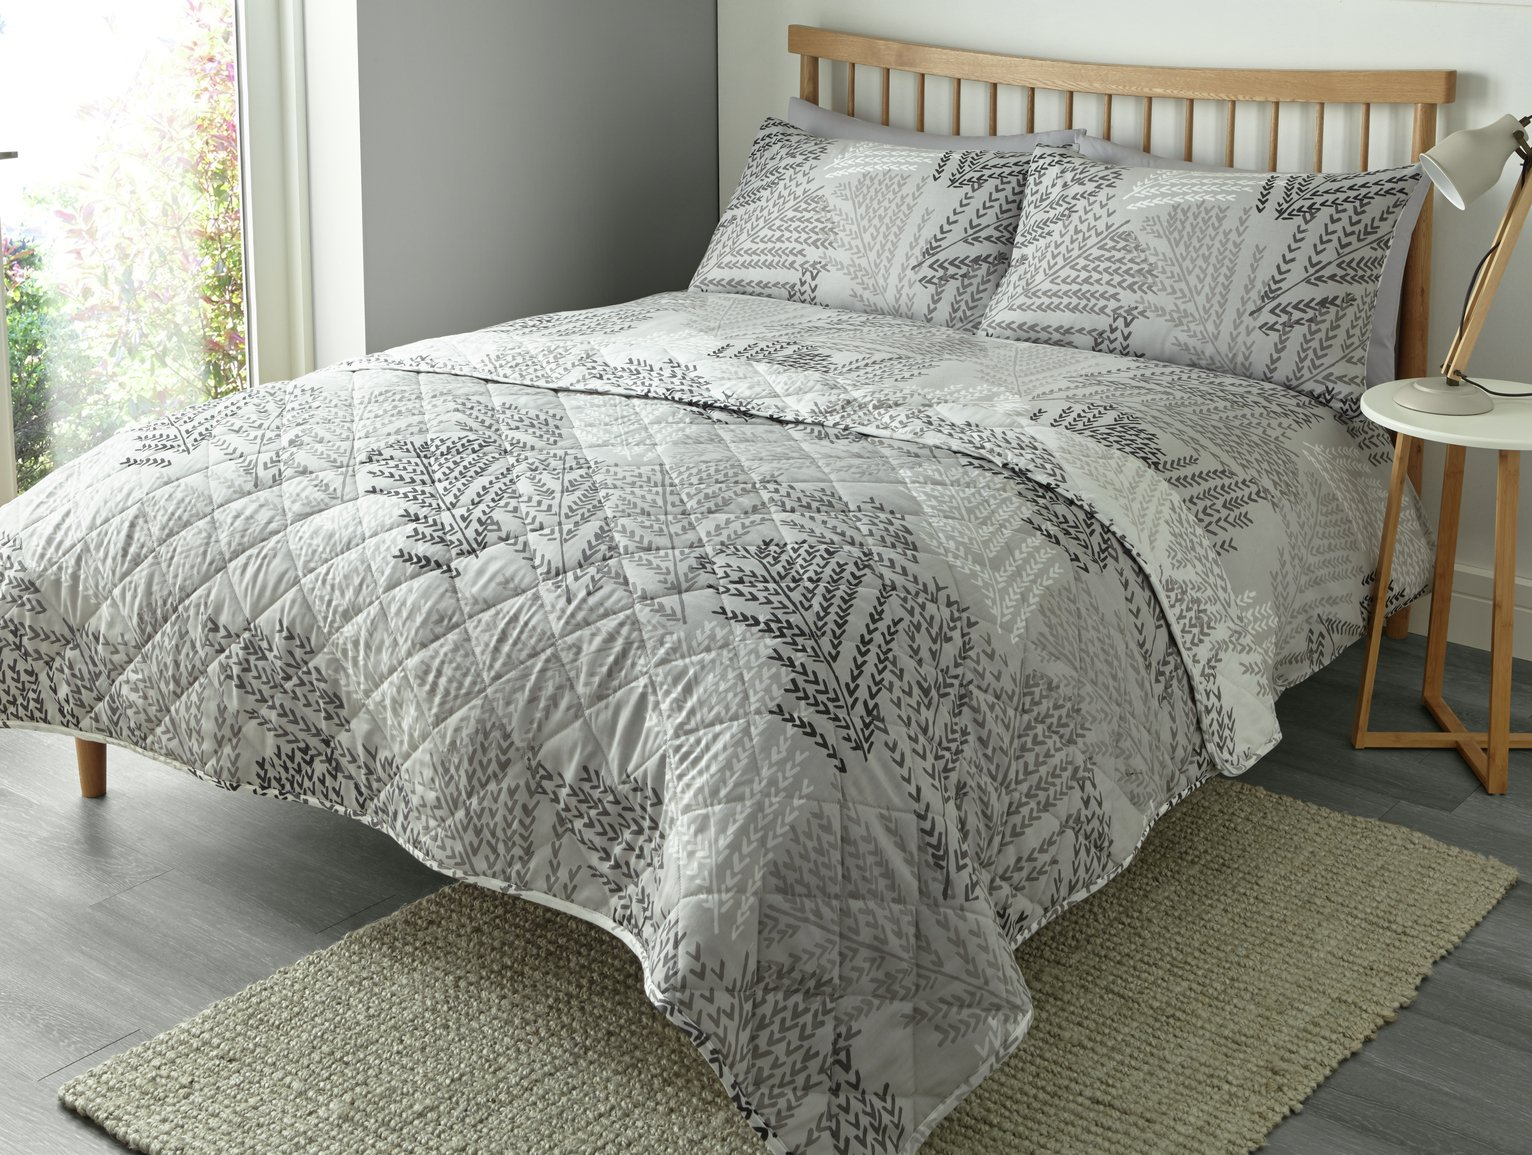 Image of Dreams N Drapes Alena Bedspread - Silver